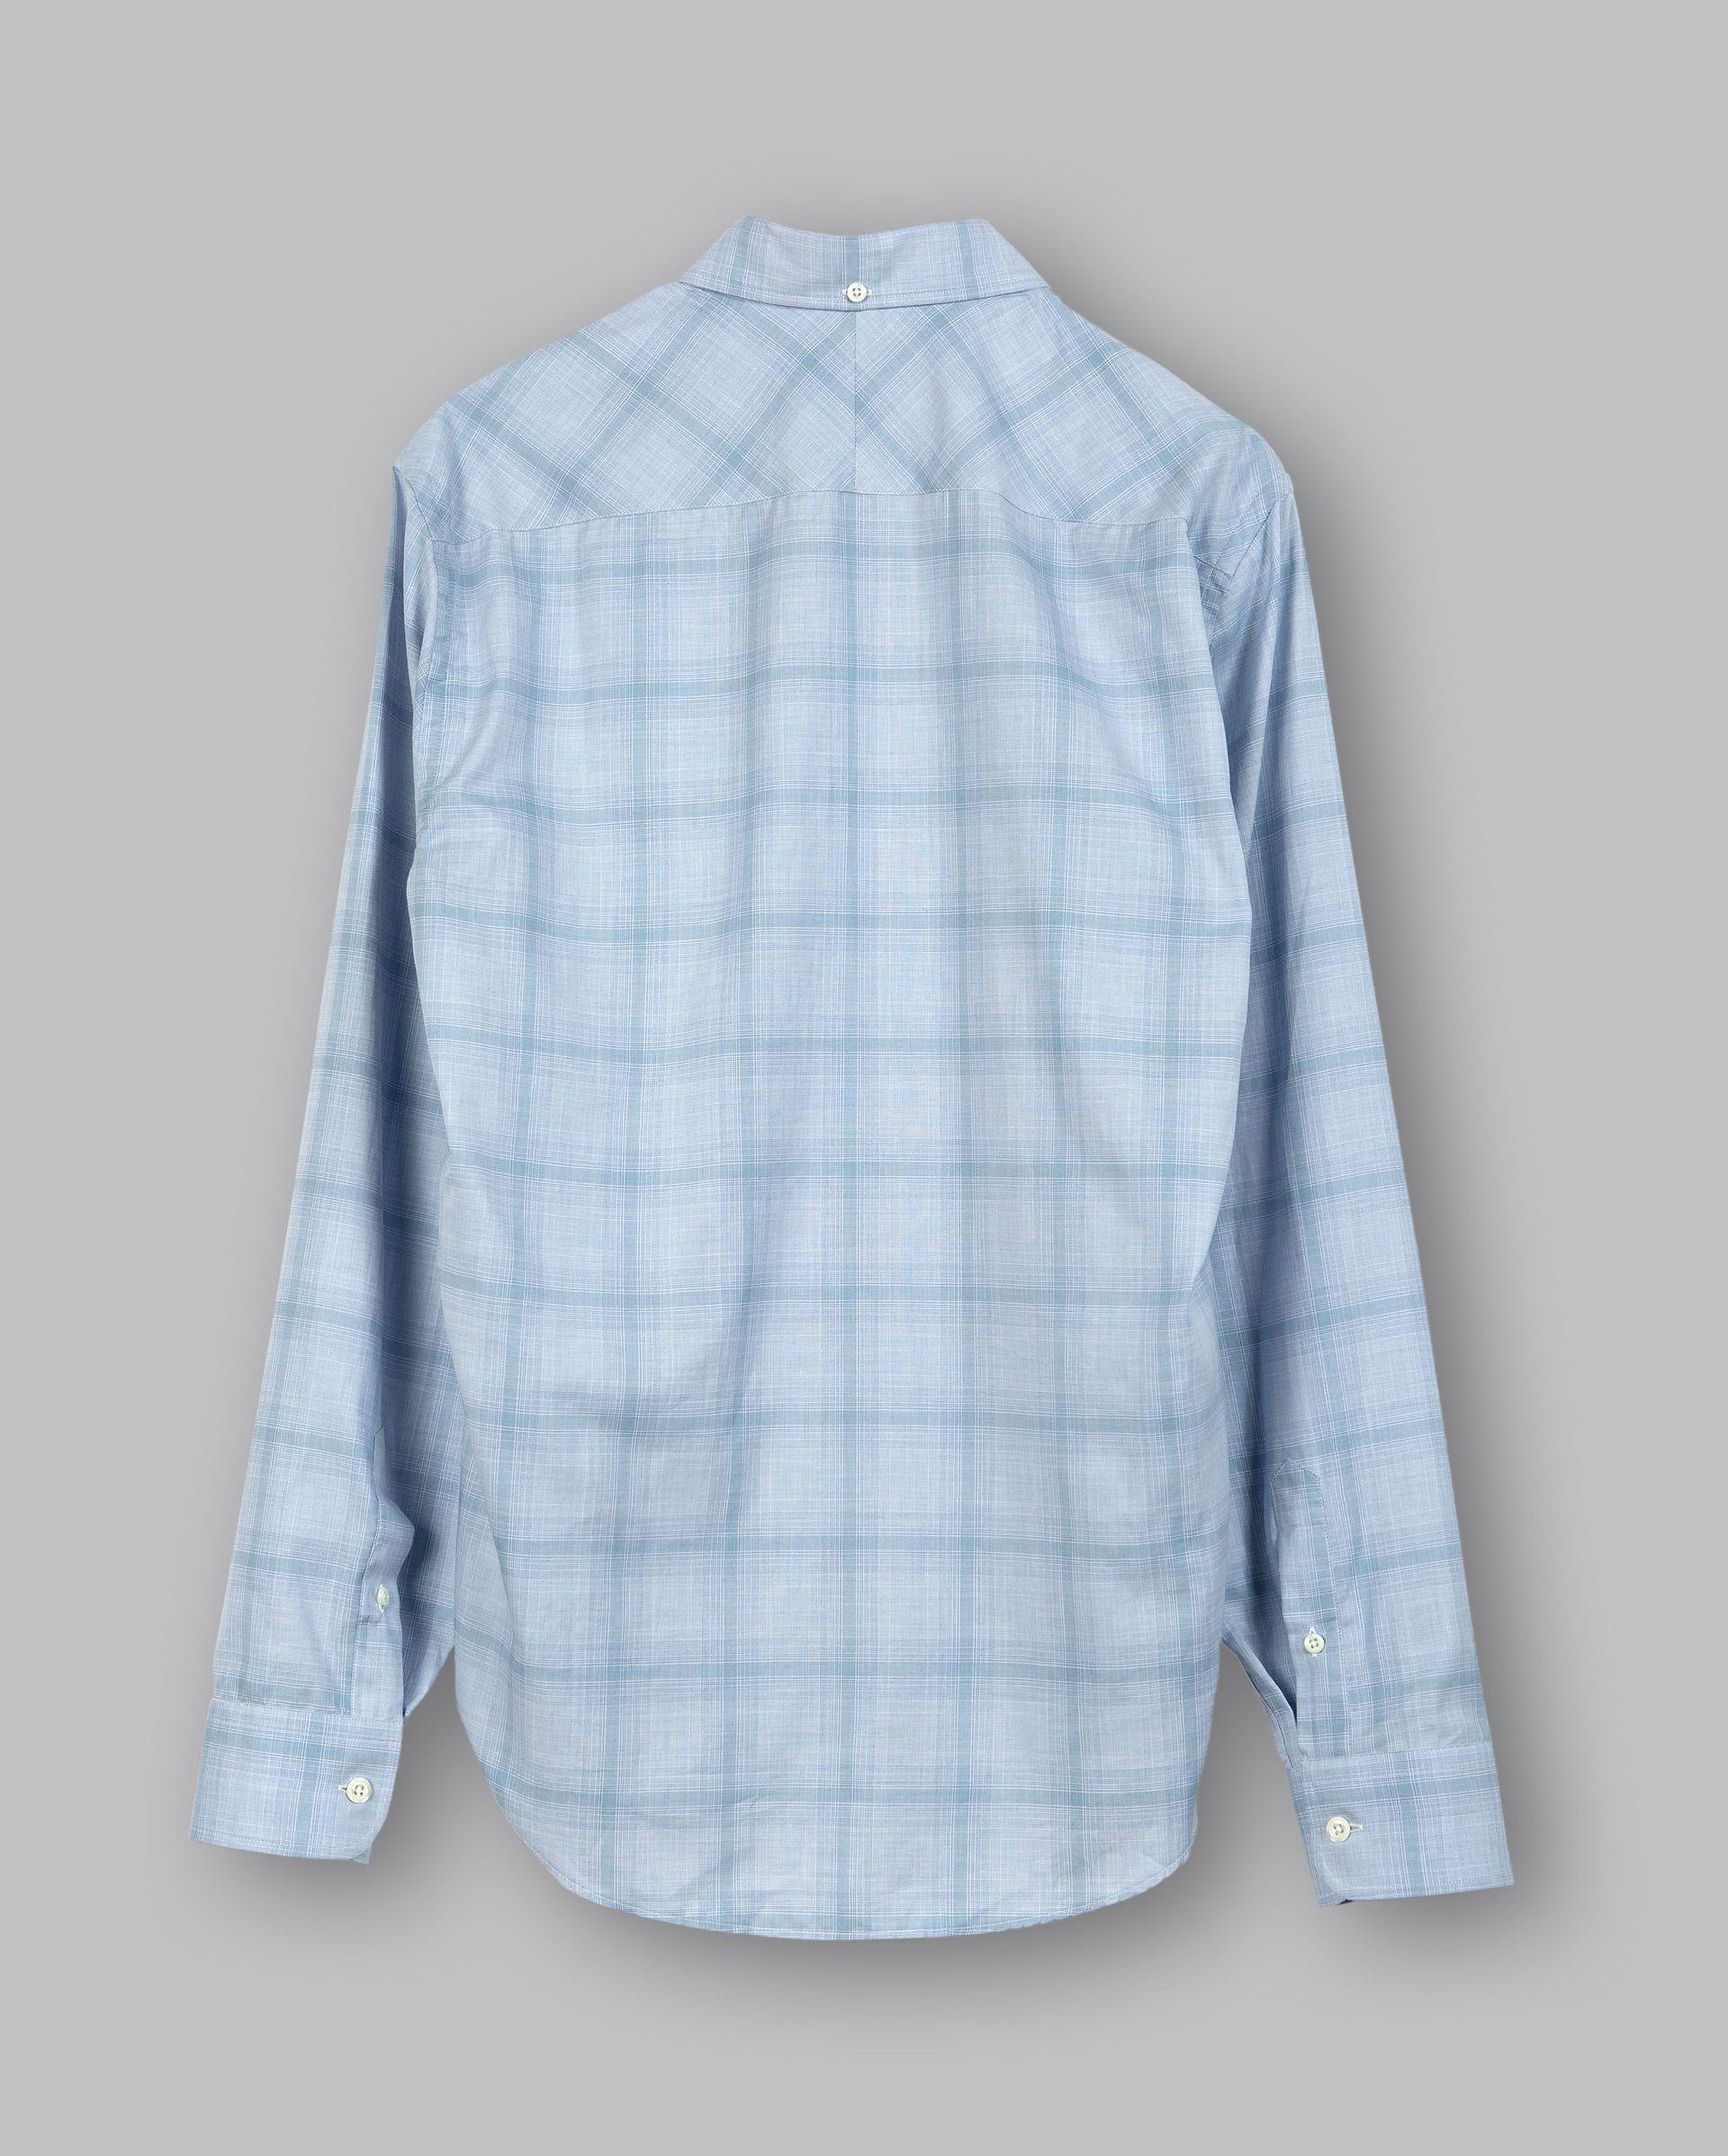 95d33d9145 Lyst - Billy Reid Kirby Bd Shirt in Blue for Men